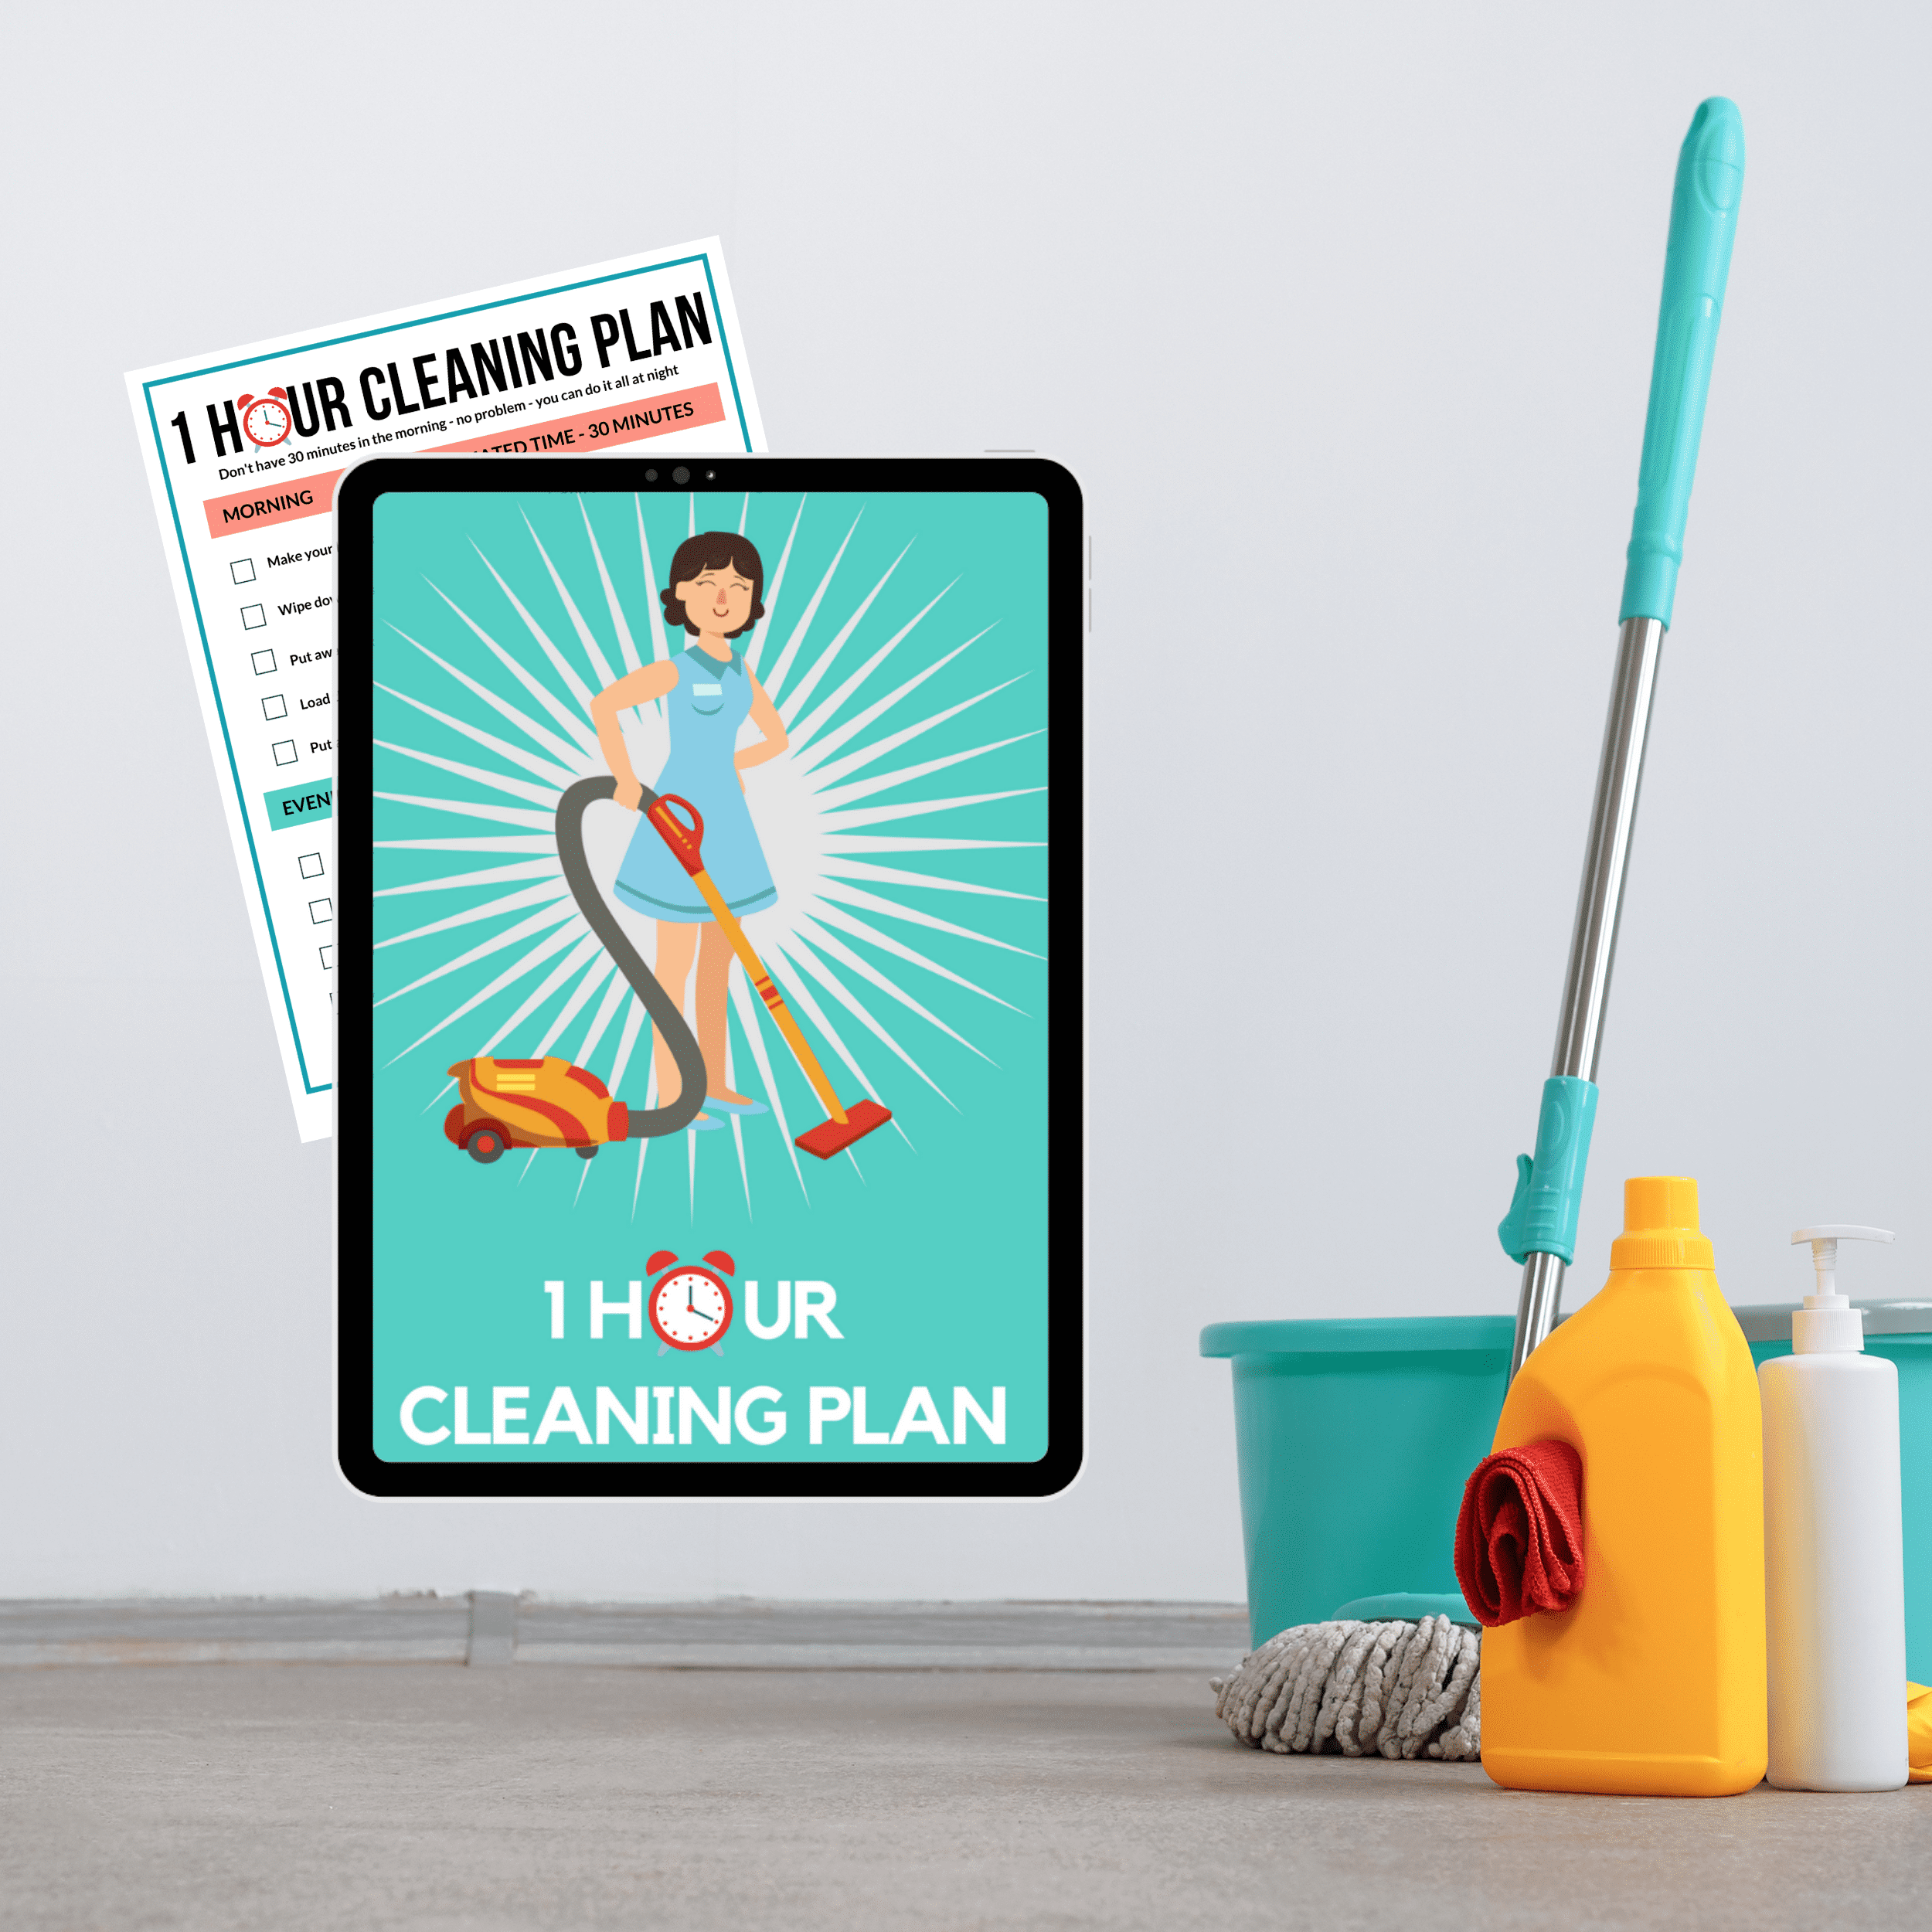 Get your cleaning done in under 1 hour